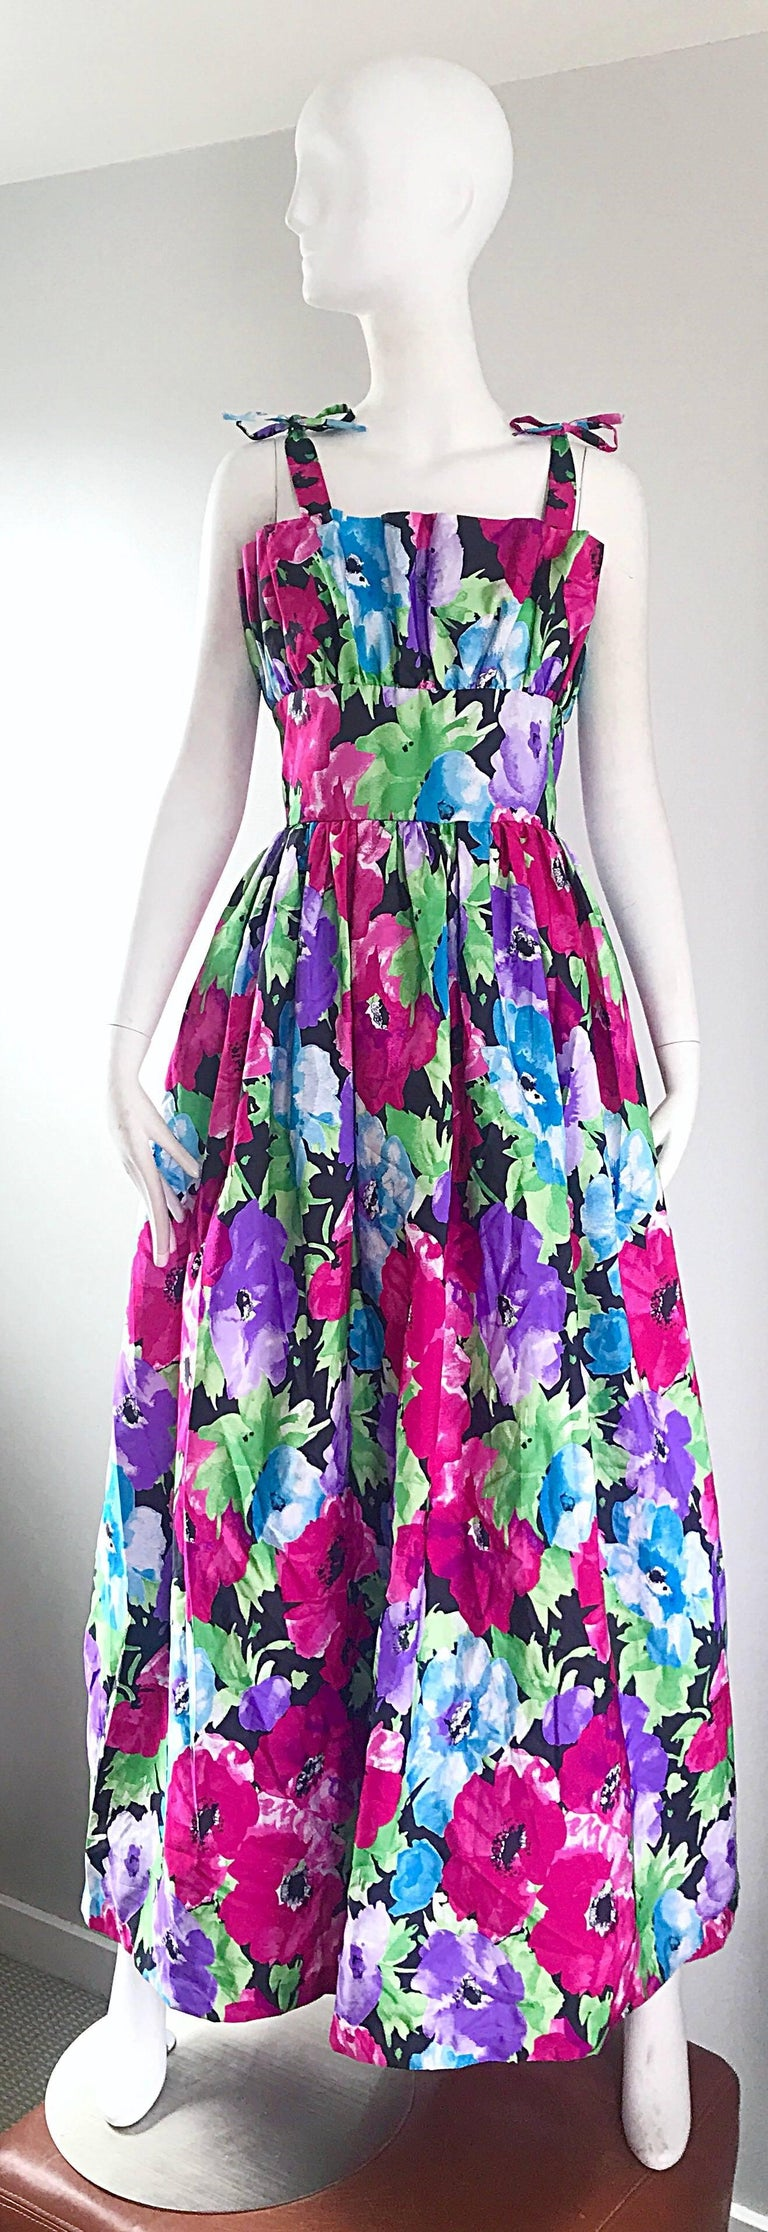 Gorgeous vintage VOCTOR COSTA plus size taffeta flower gown / maxi dress! Features a tropical flower print in vibrant colors of pink, fuchsia, blue, green and black. Avant Garde accordion detail at the bodice. Detachable ribbon ties at each shoulder